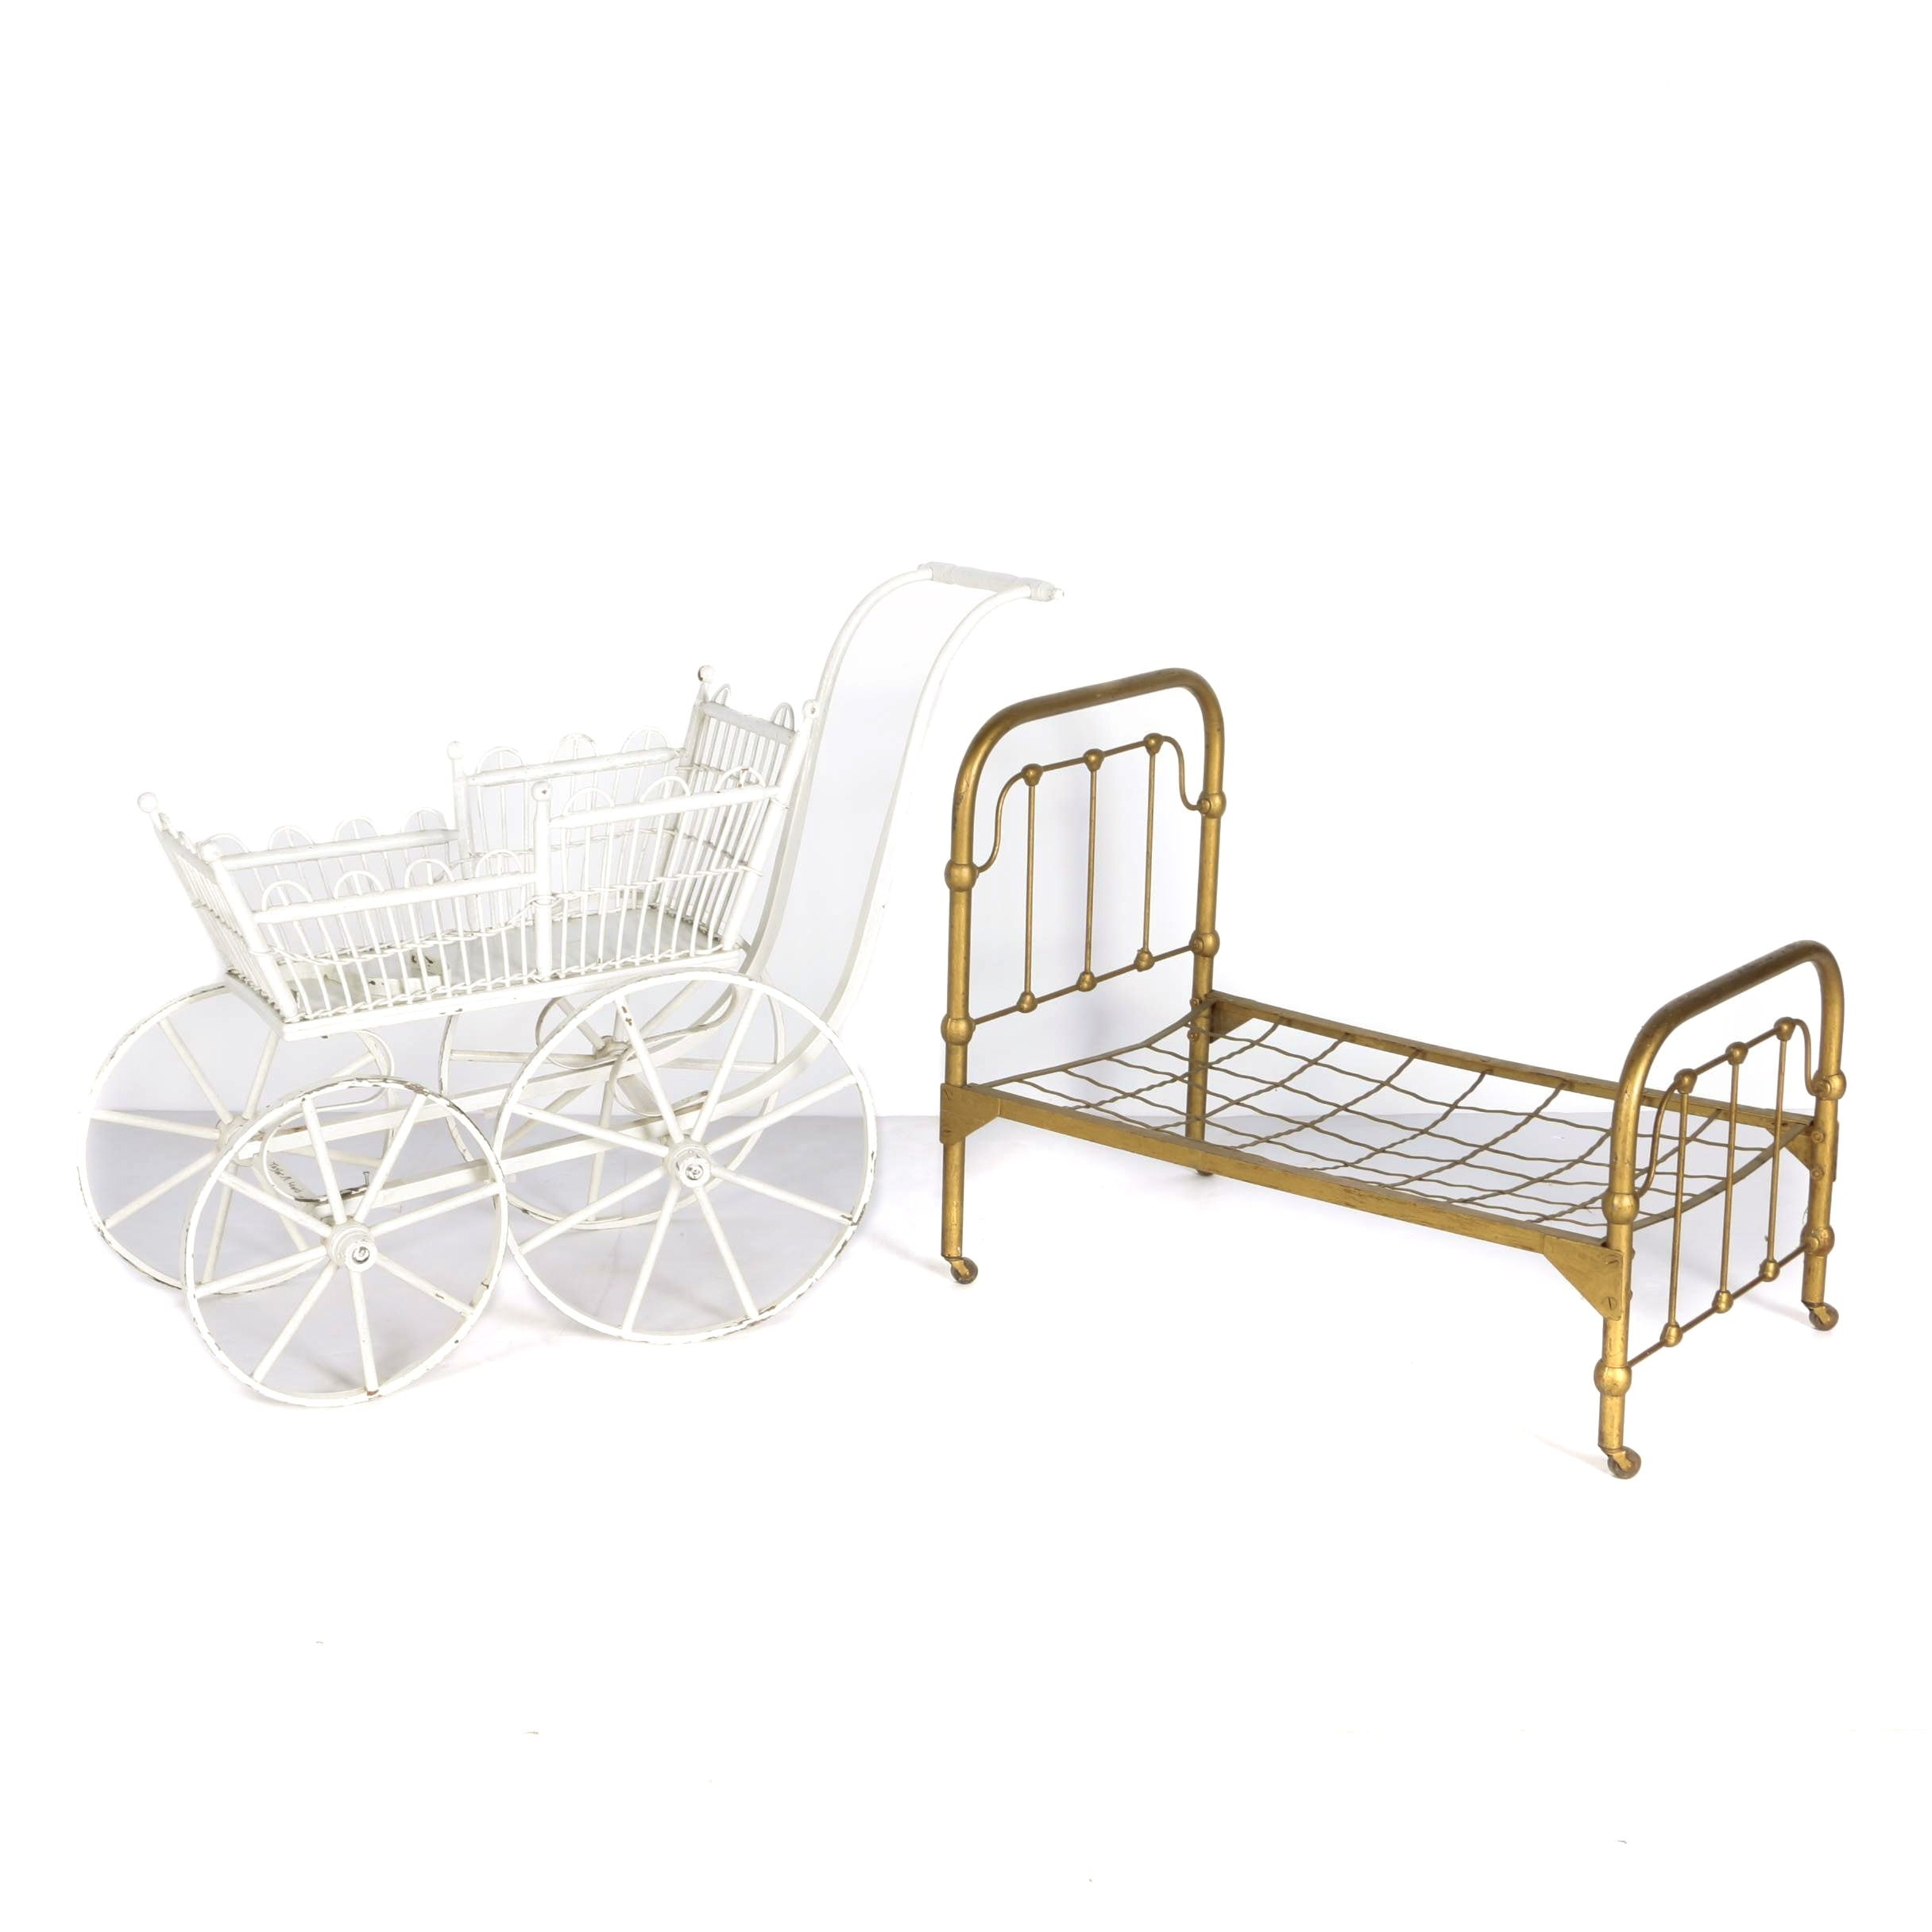 Vintage Doll Carriage and Bed